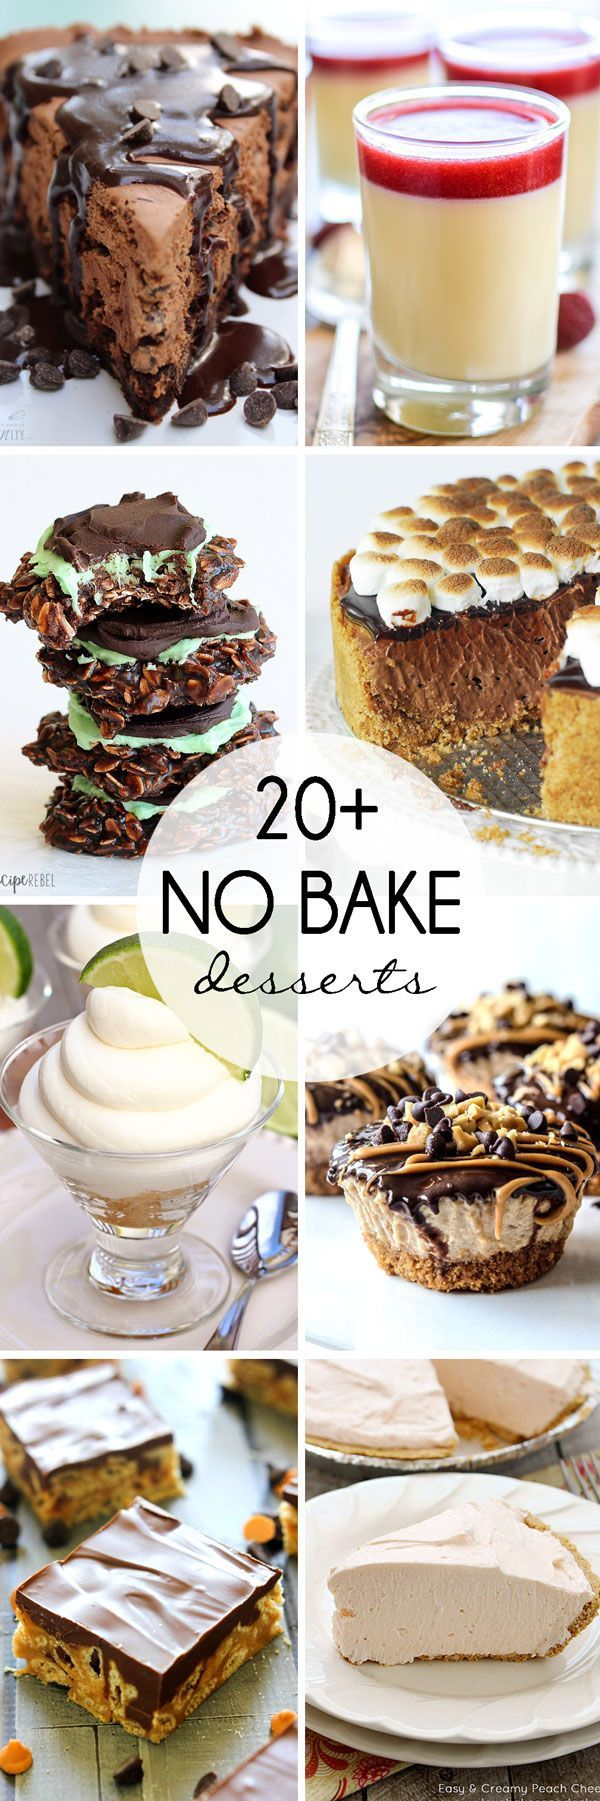 20+ No Bake Desserts - yummy treats without heating up the oven!